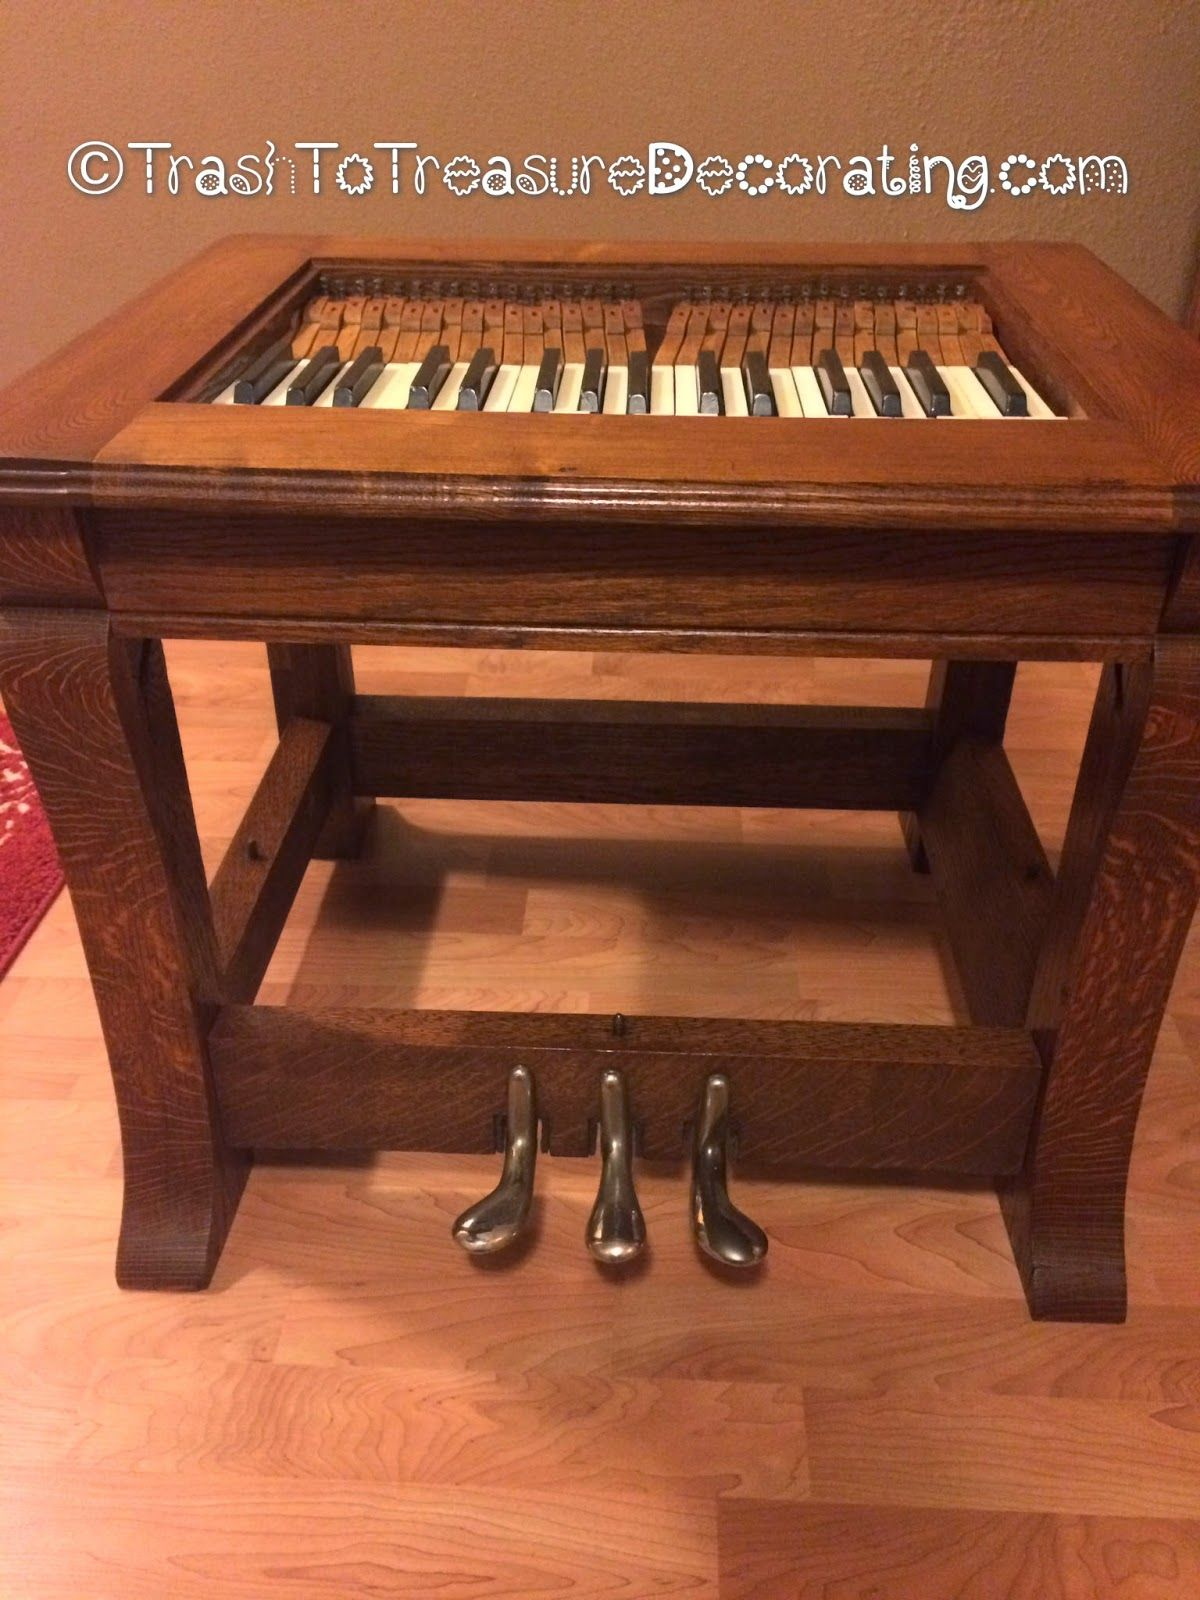 Trash to Treasure Decorating: What to Do With an Old Piano ...